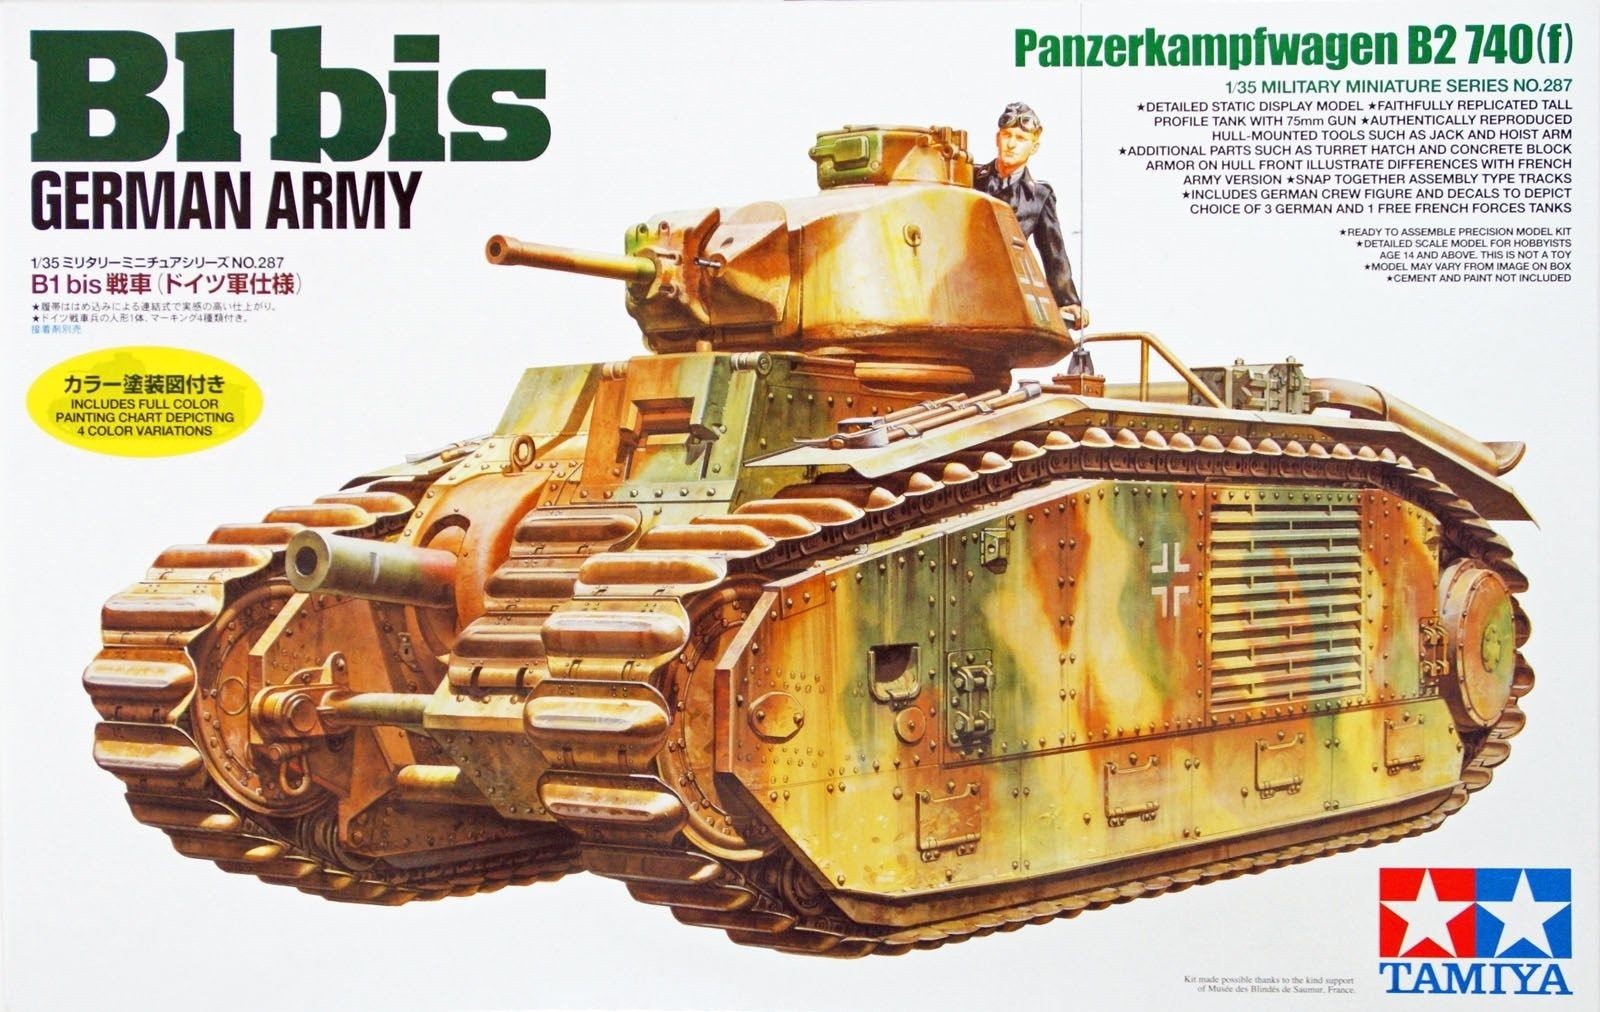 German B1 bis - Tamiya 35287 - plastic model kit - 1/35 scale